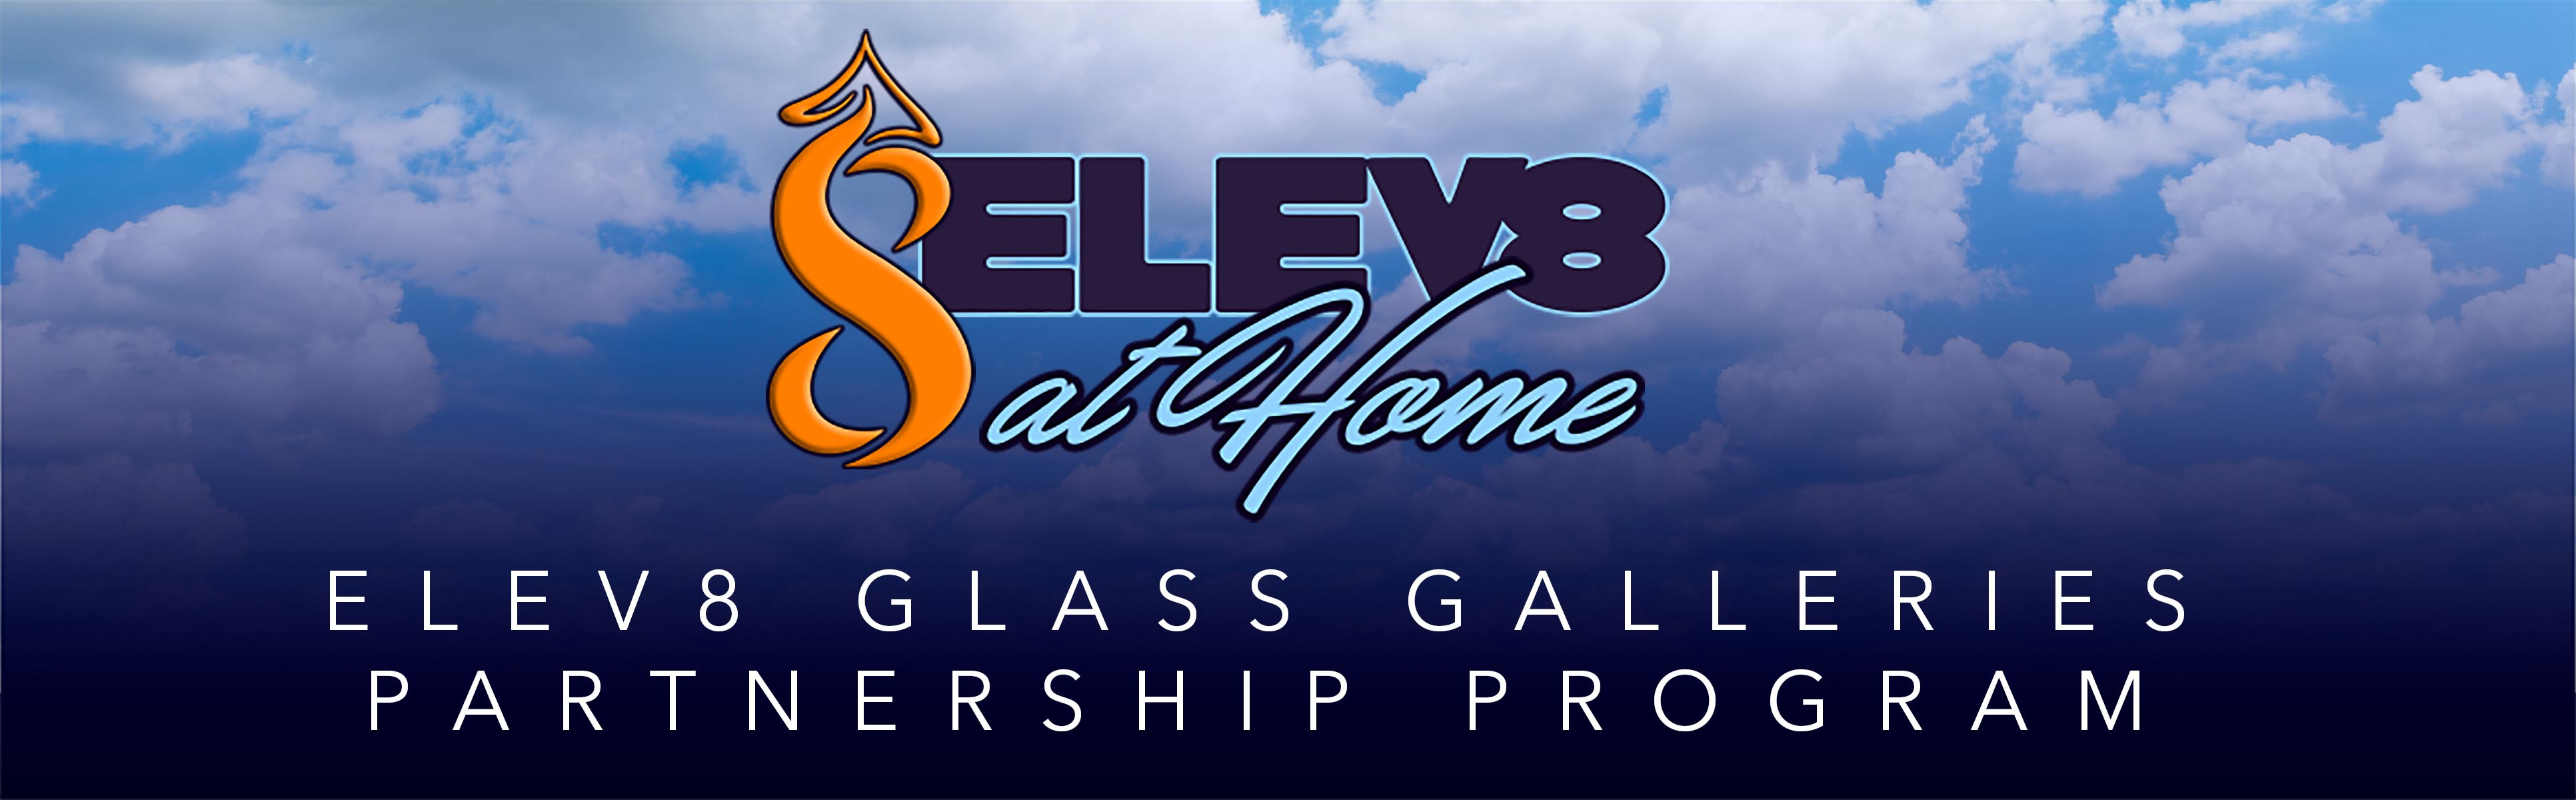 elev8-at-home-partnership-banner.jpg